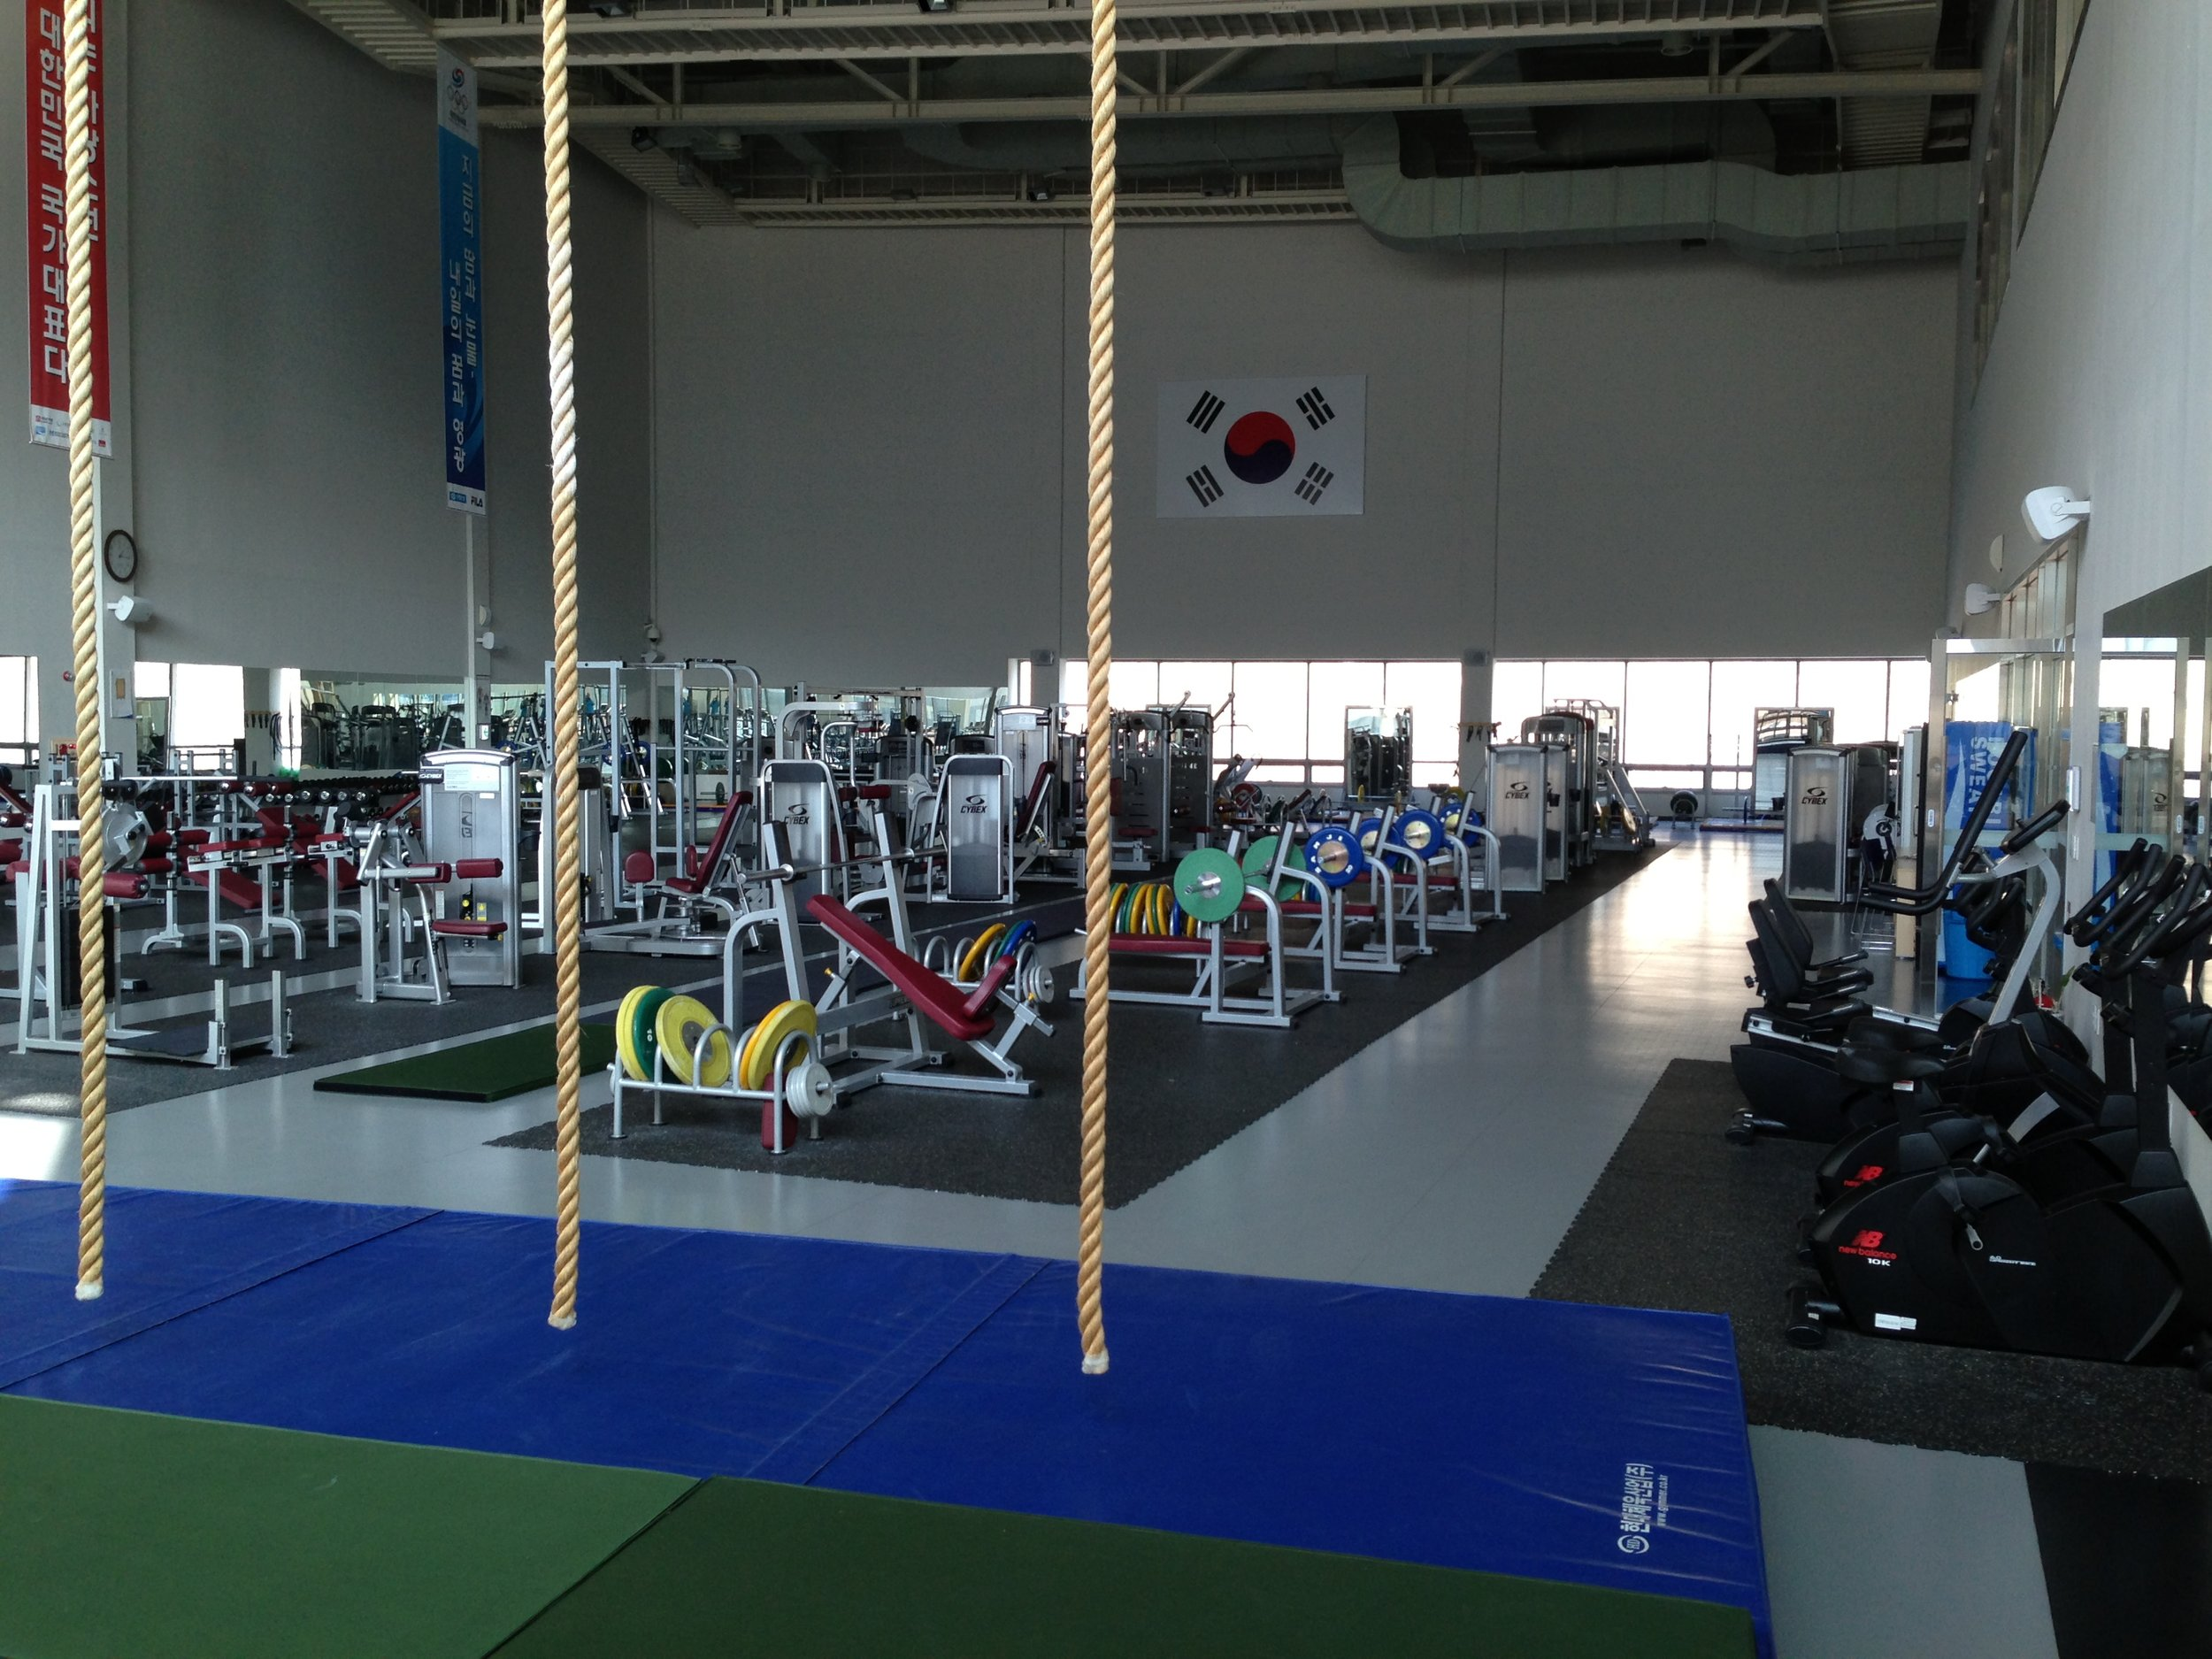 The Jincheon center weight and strength-training room